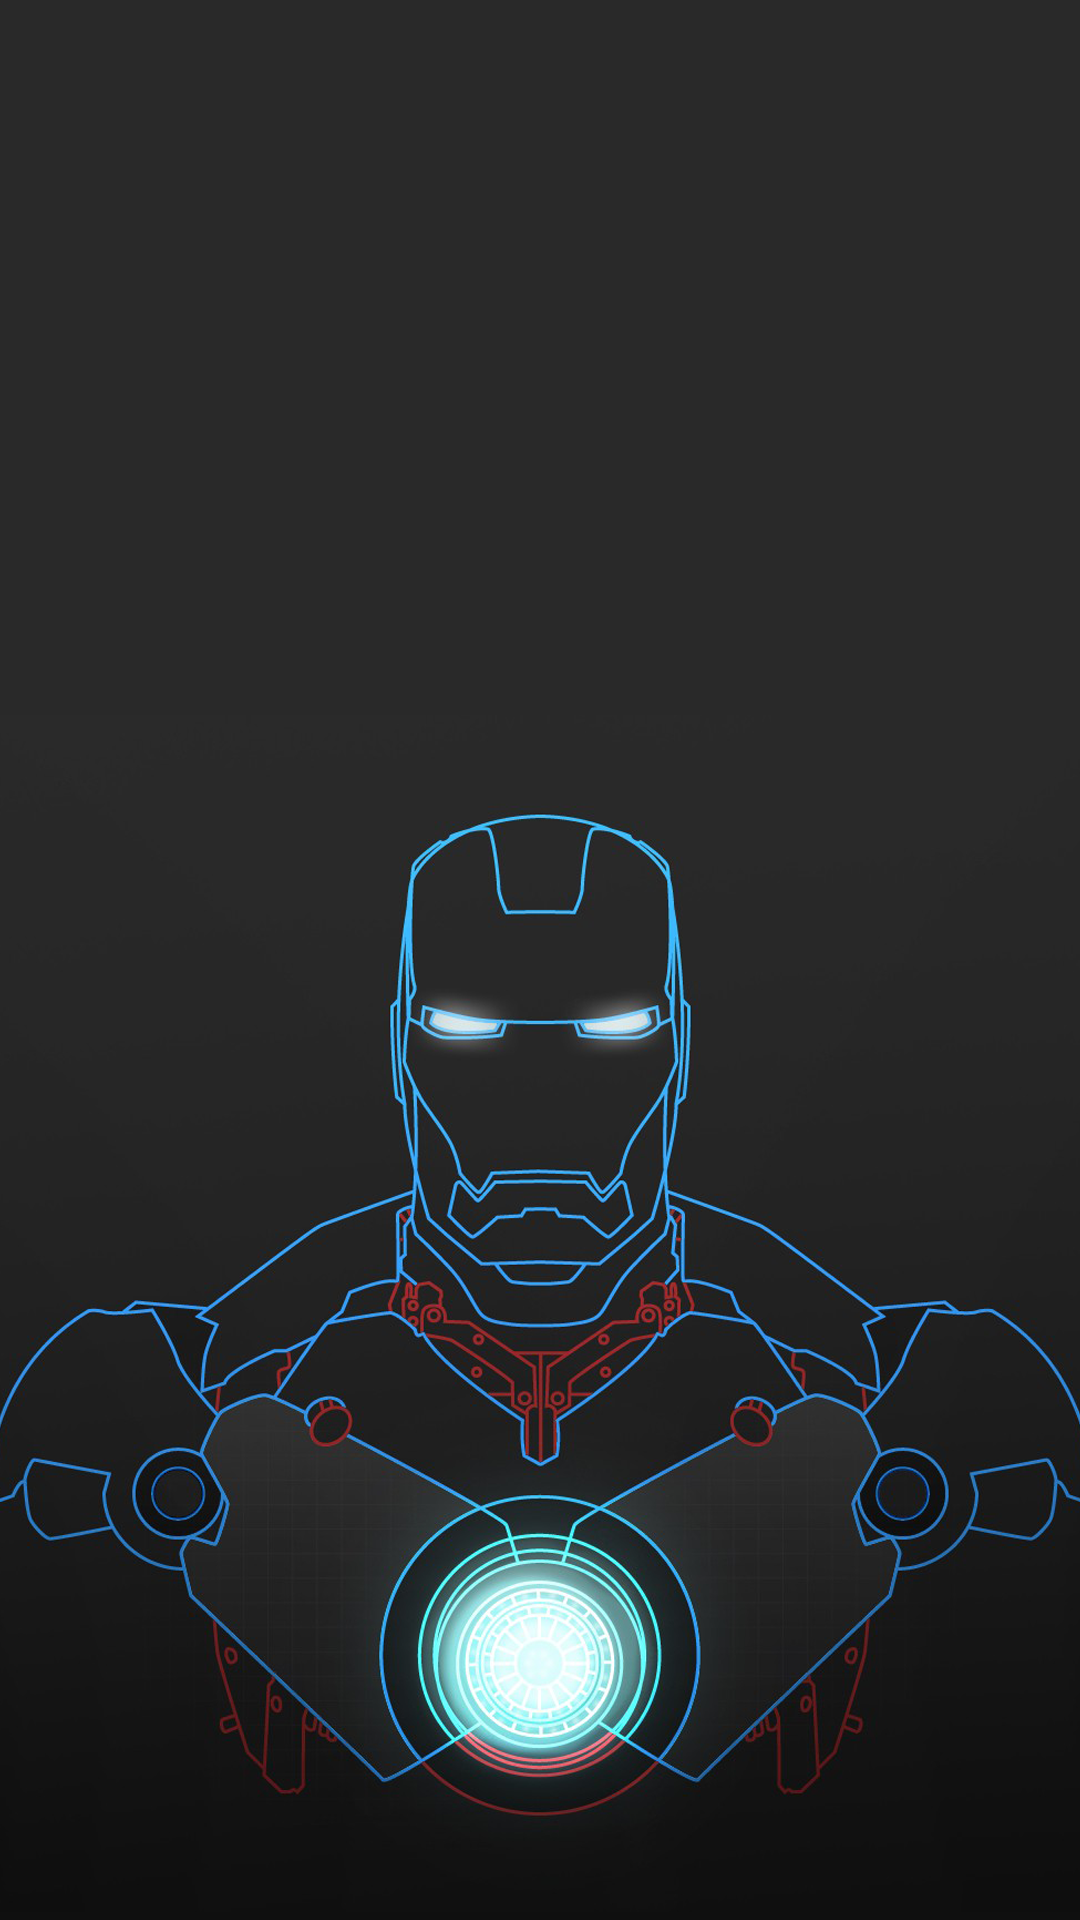 Iron man cartoon wallpaper - Iron man wallpaper anime ...